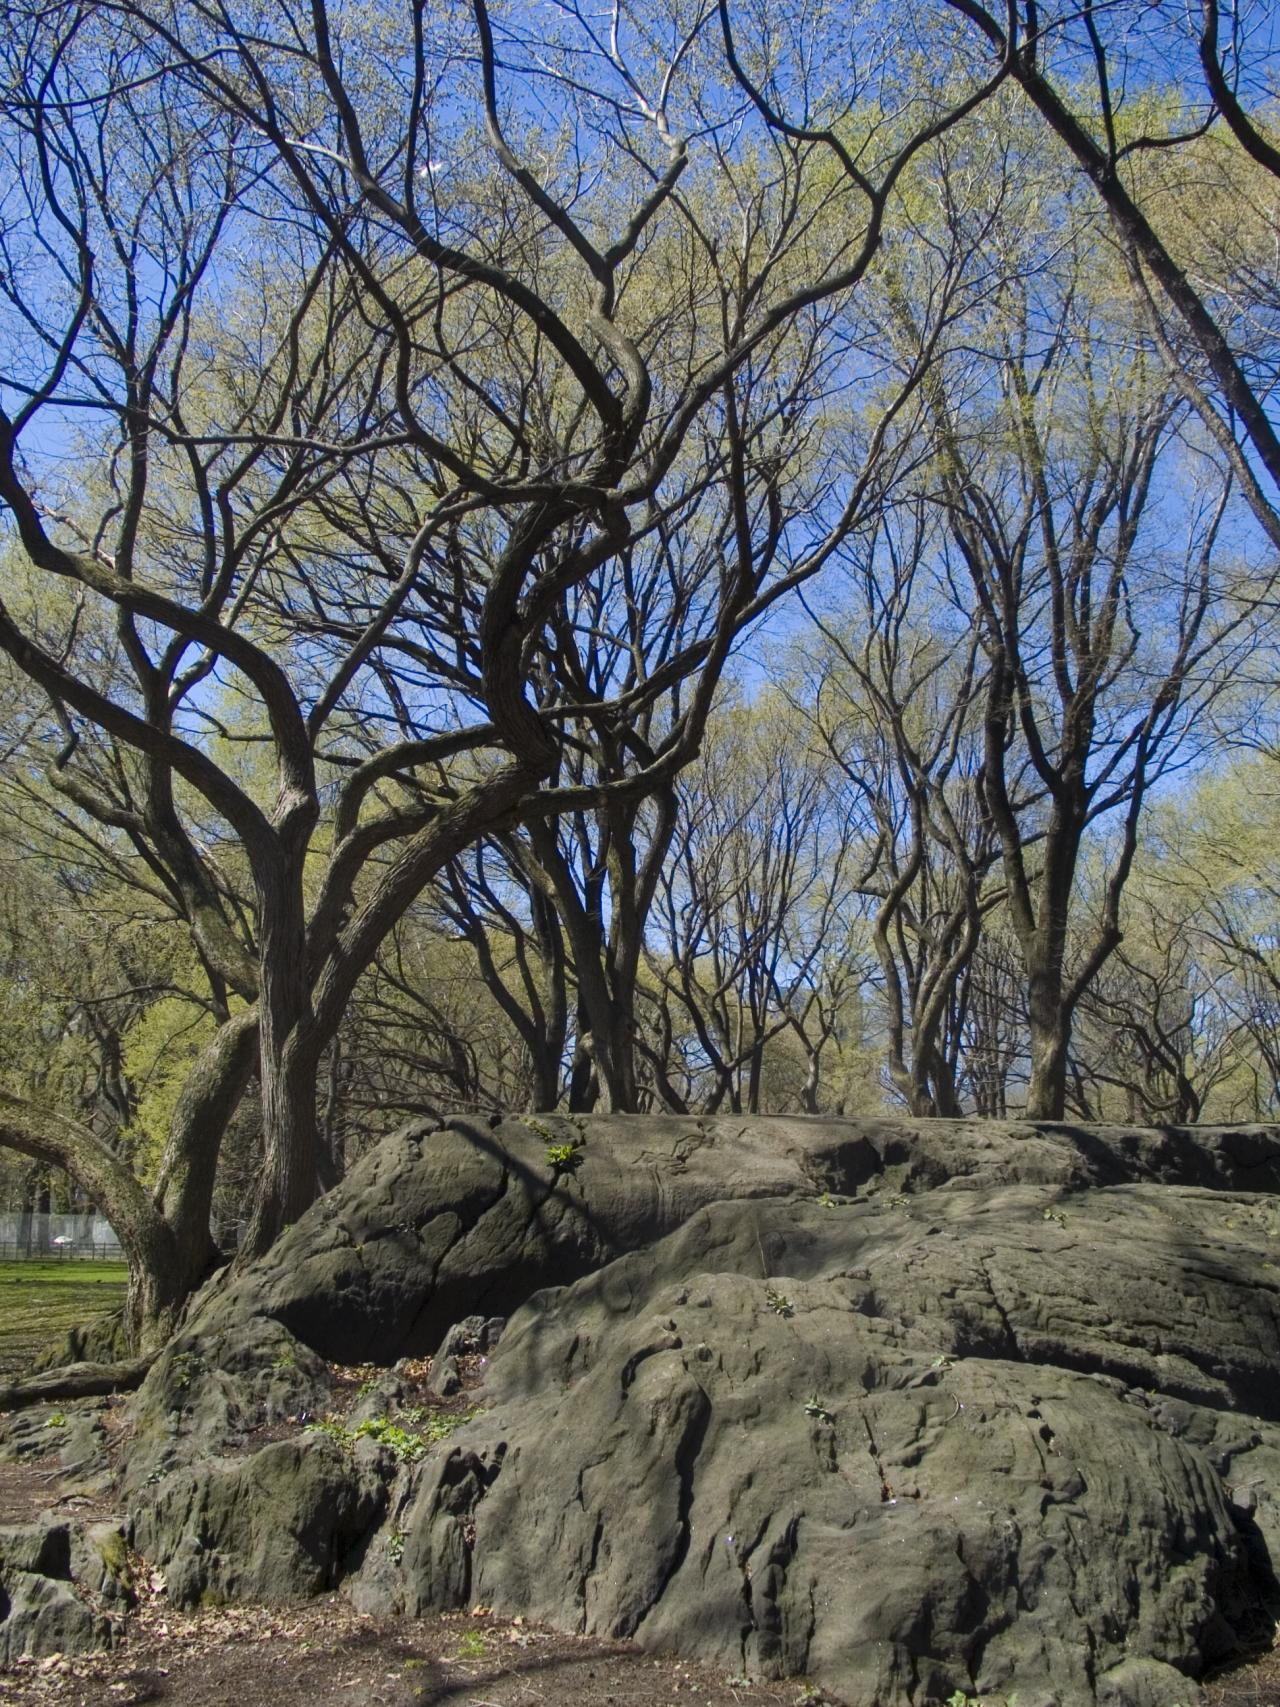 Central Park - Tree Forms, 2006, digital photograph by Orin Buck.